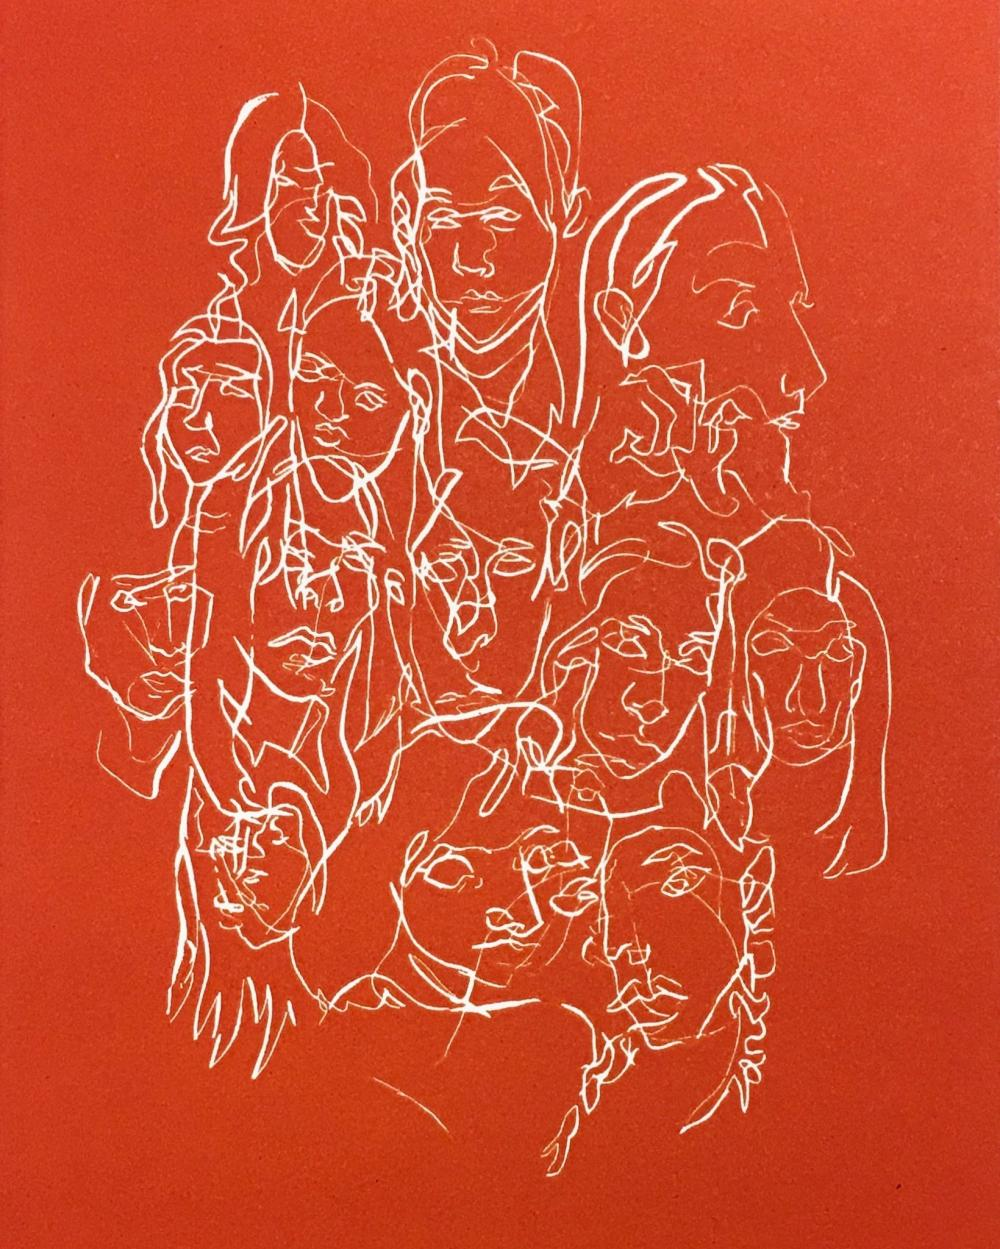 drawn portraits of many people overlapping in white on a red background